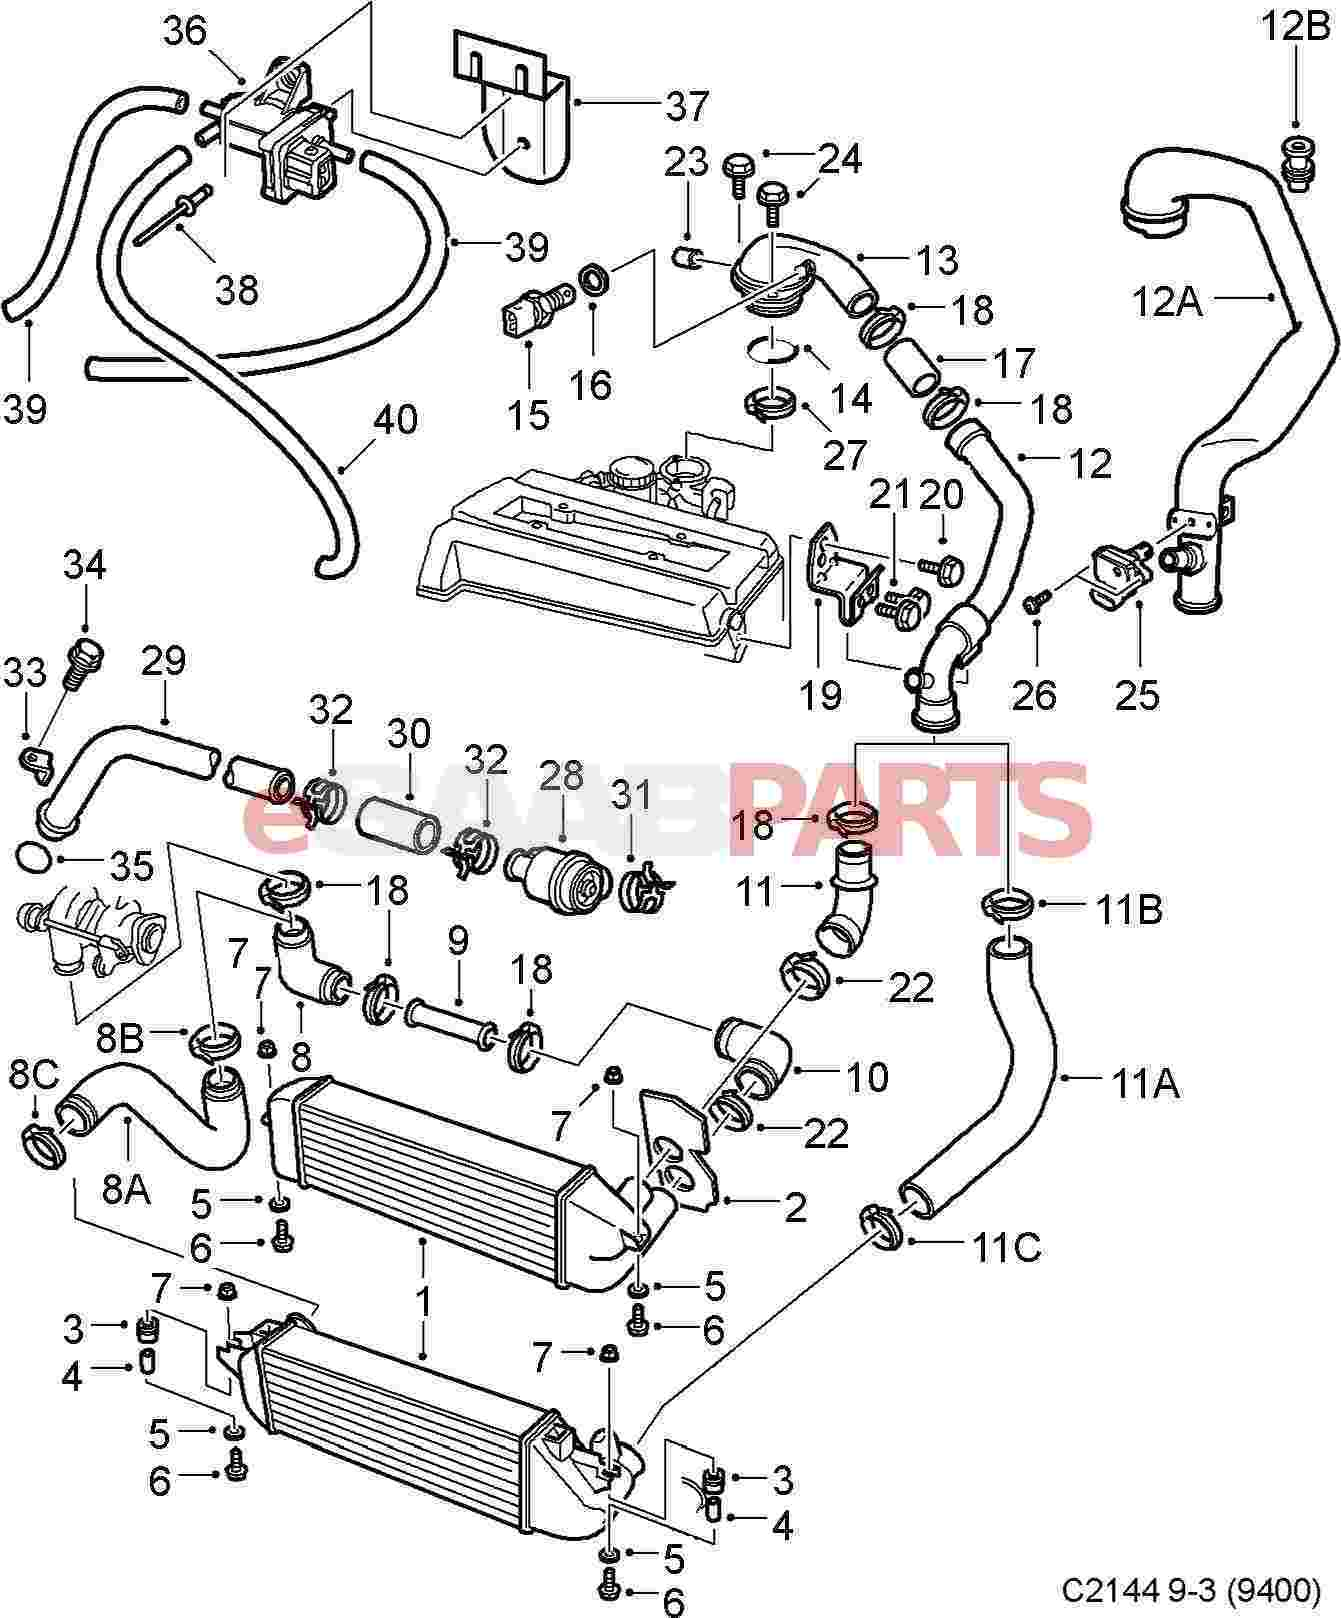 saab 900 turbo wiring diagram html